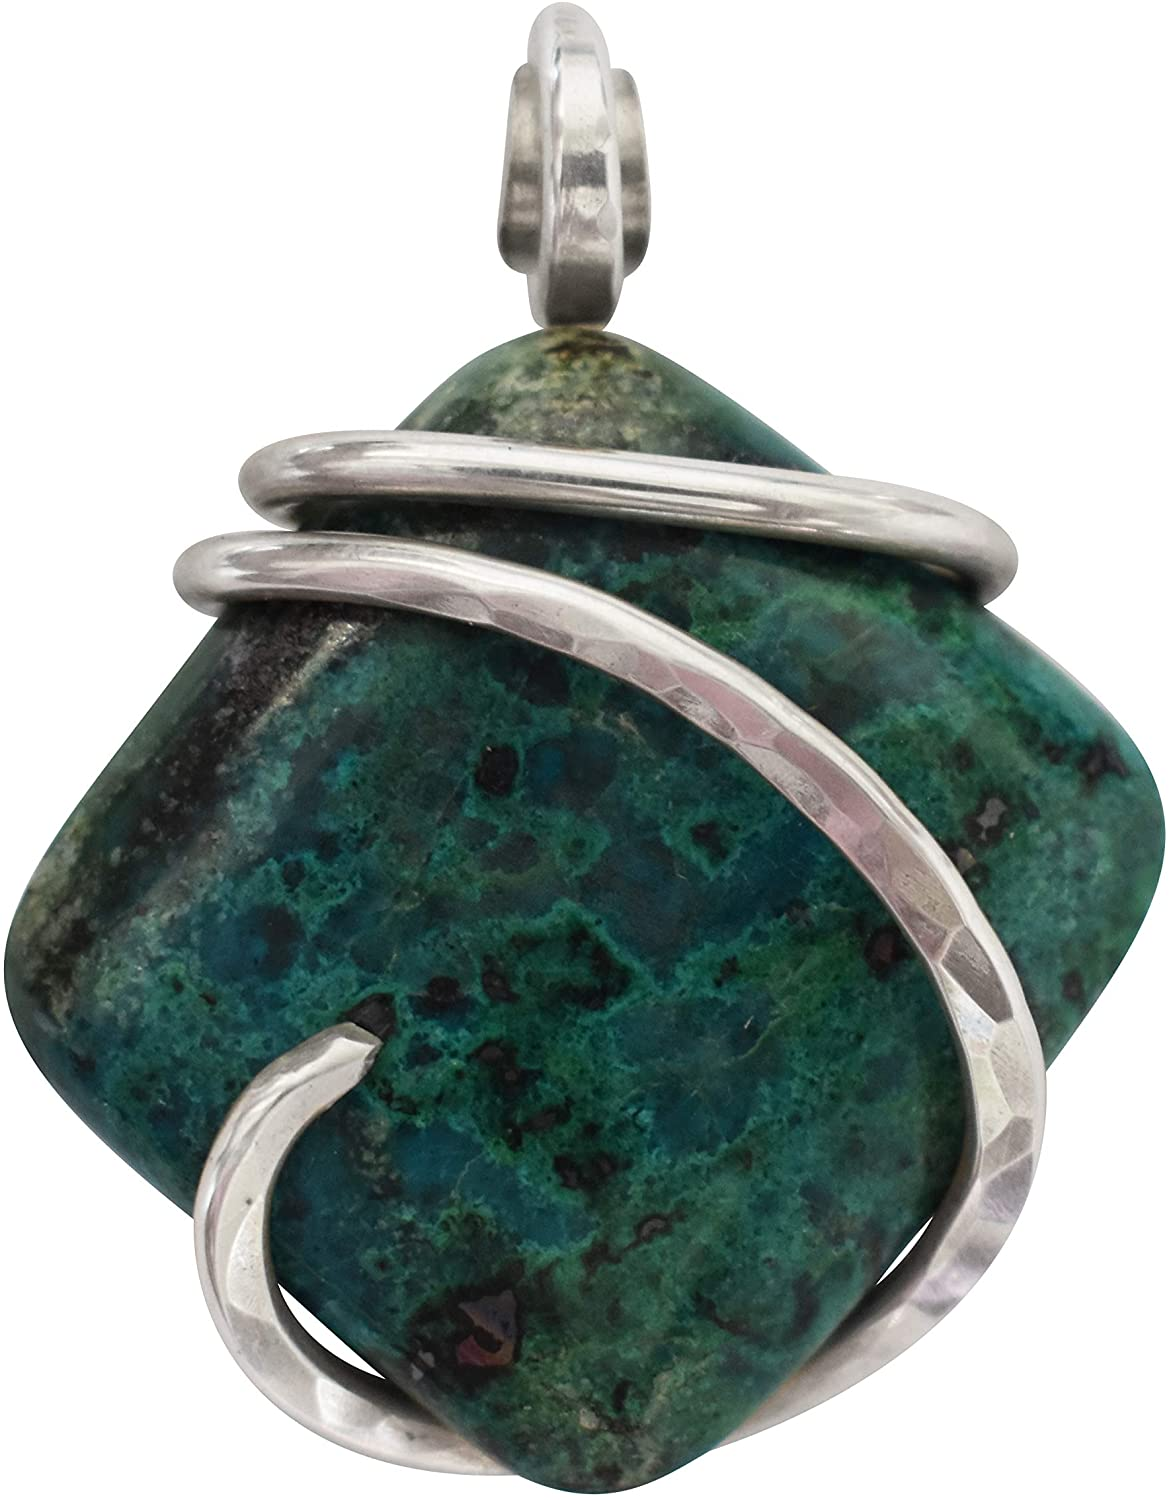 Chrysocolla Stone Pendant Hand Wrapped in Silver by Isabella Roth